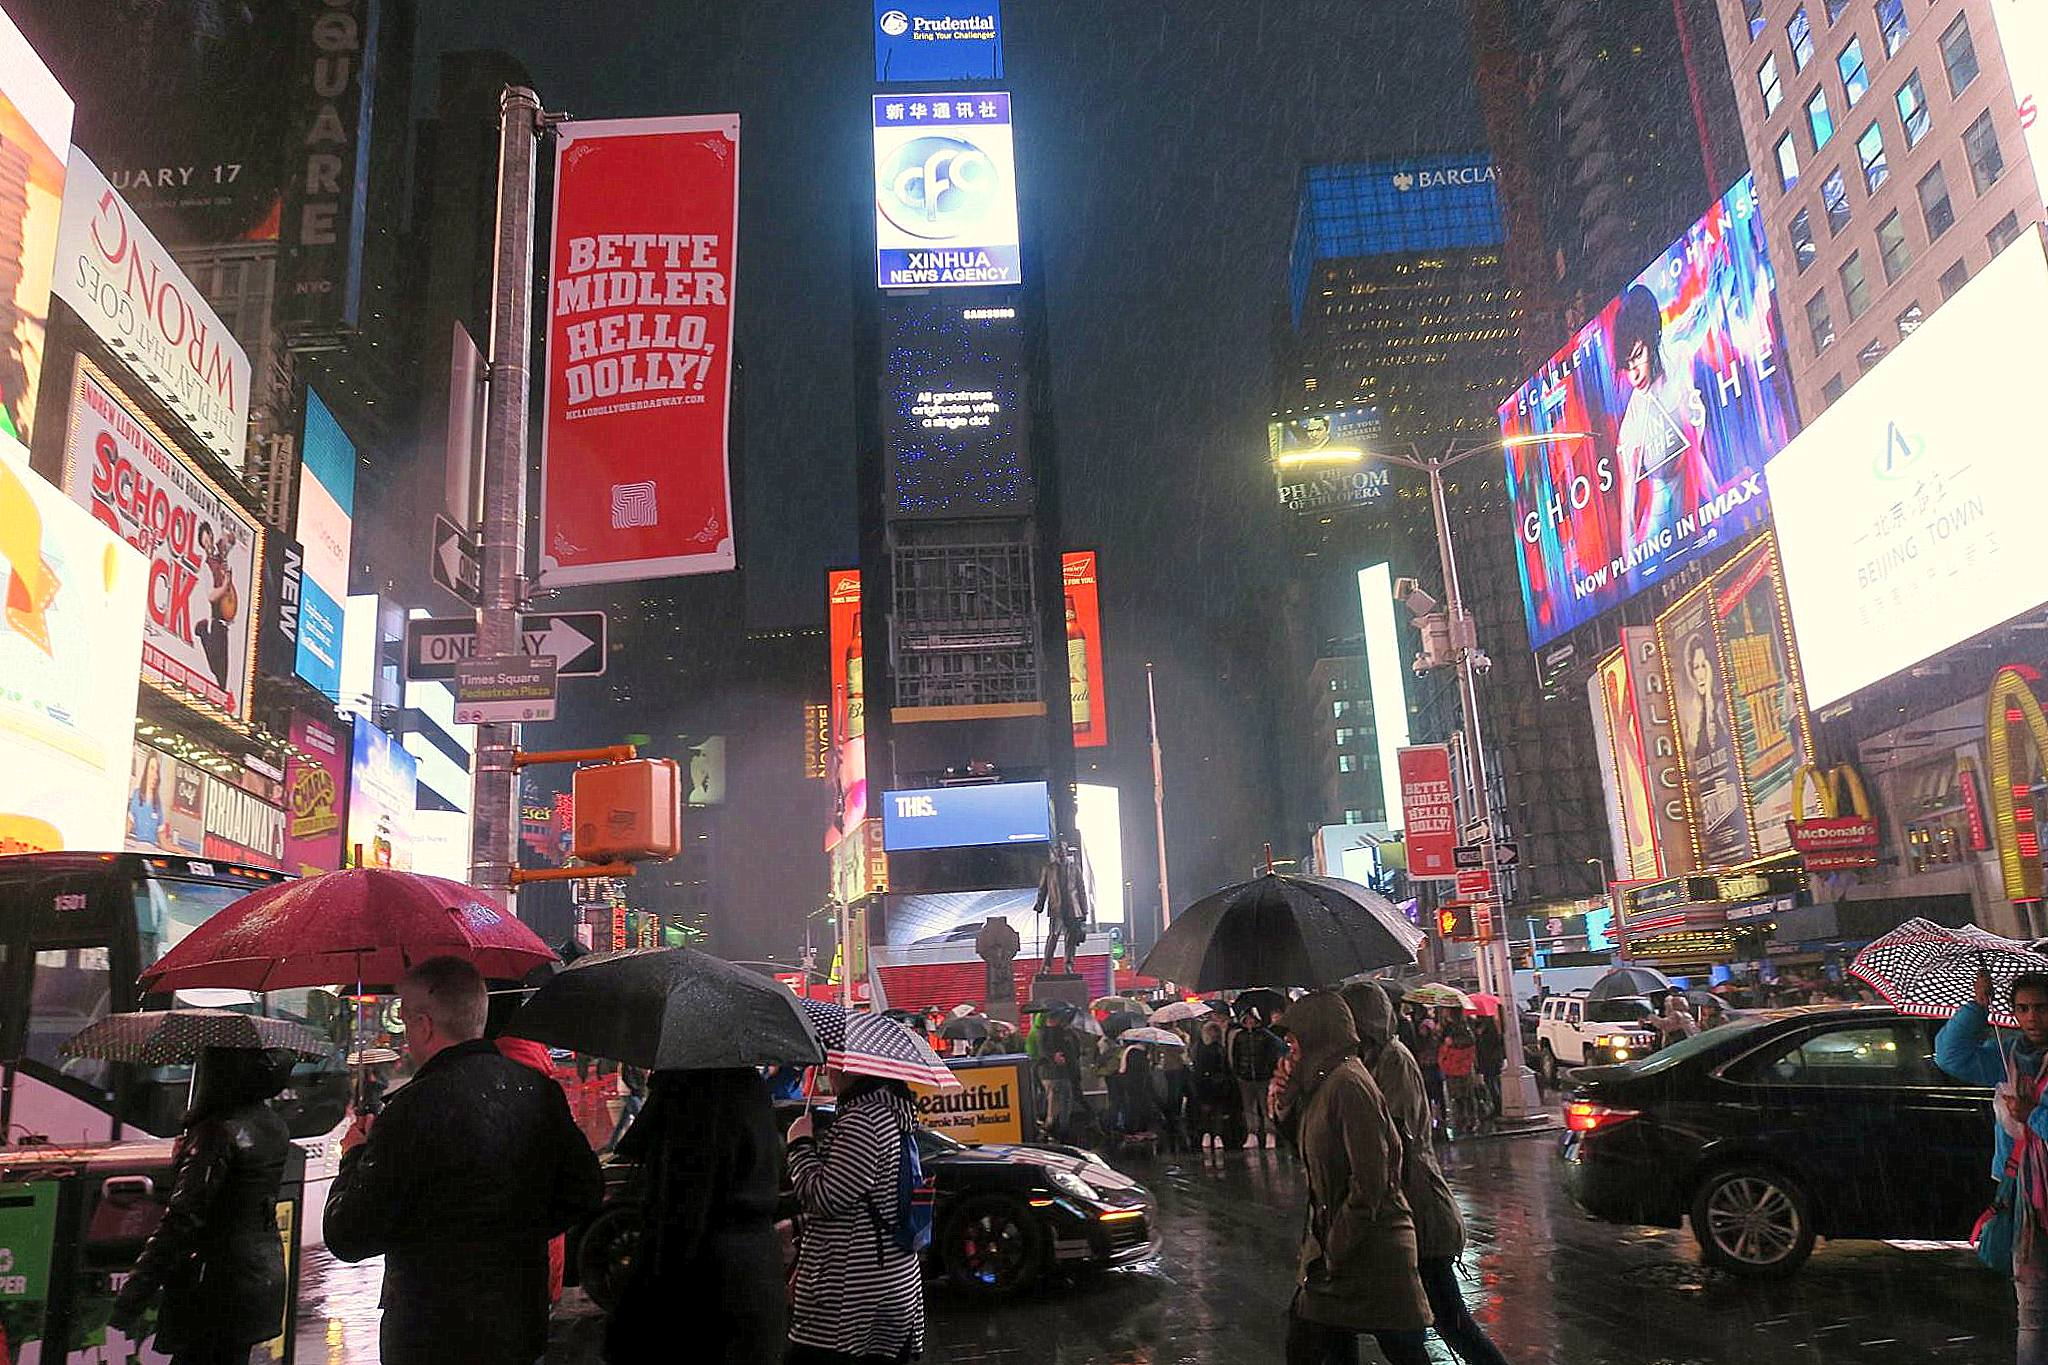 Time Square: Flashing lights and huge billboards